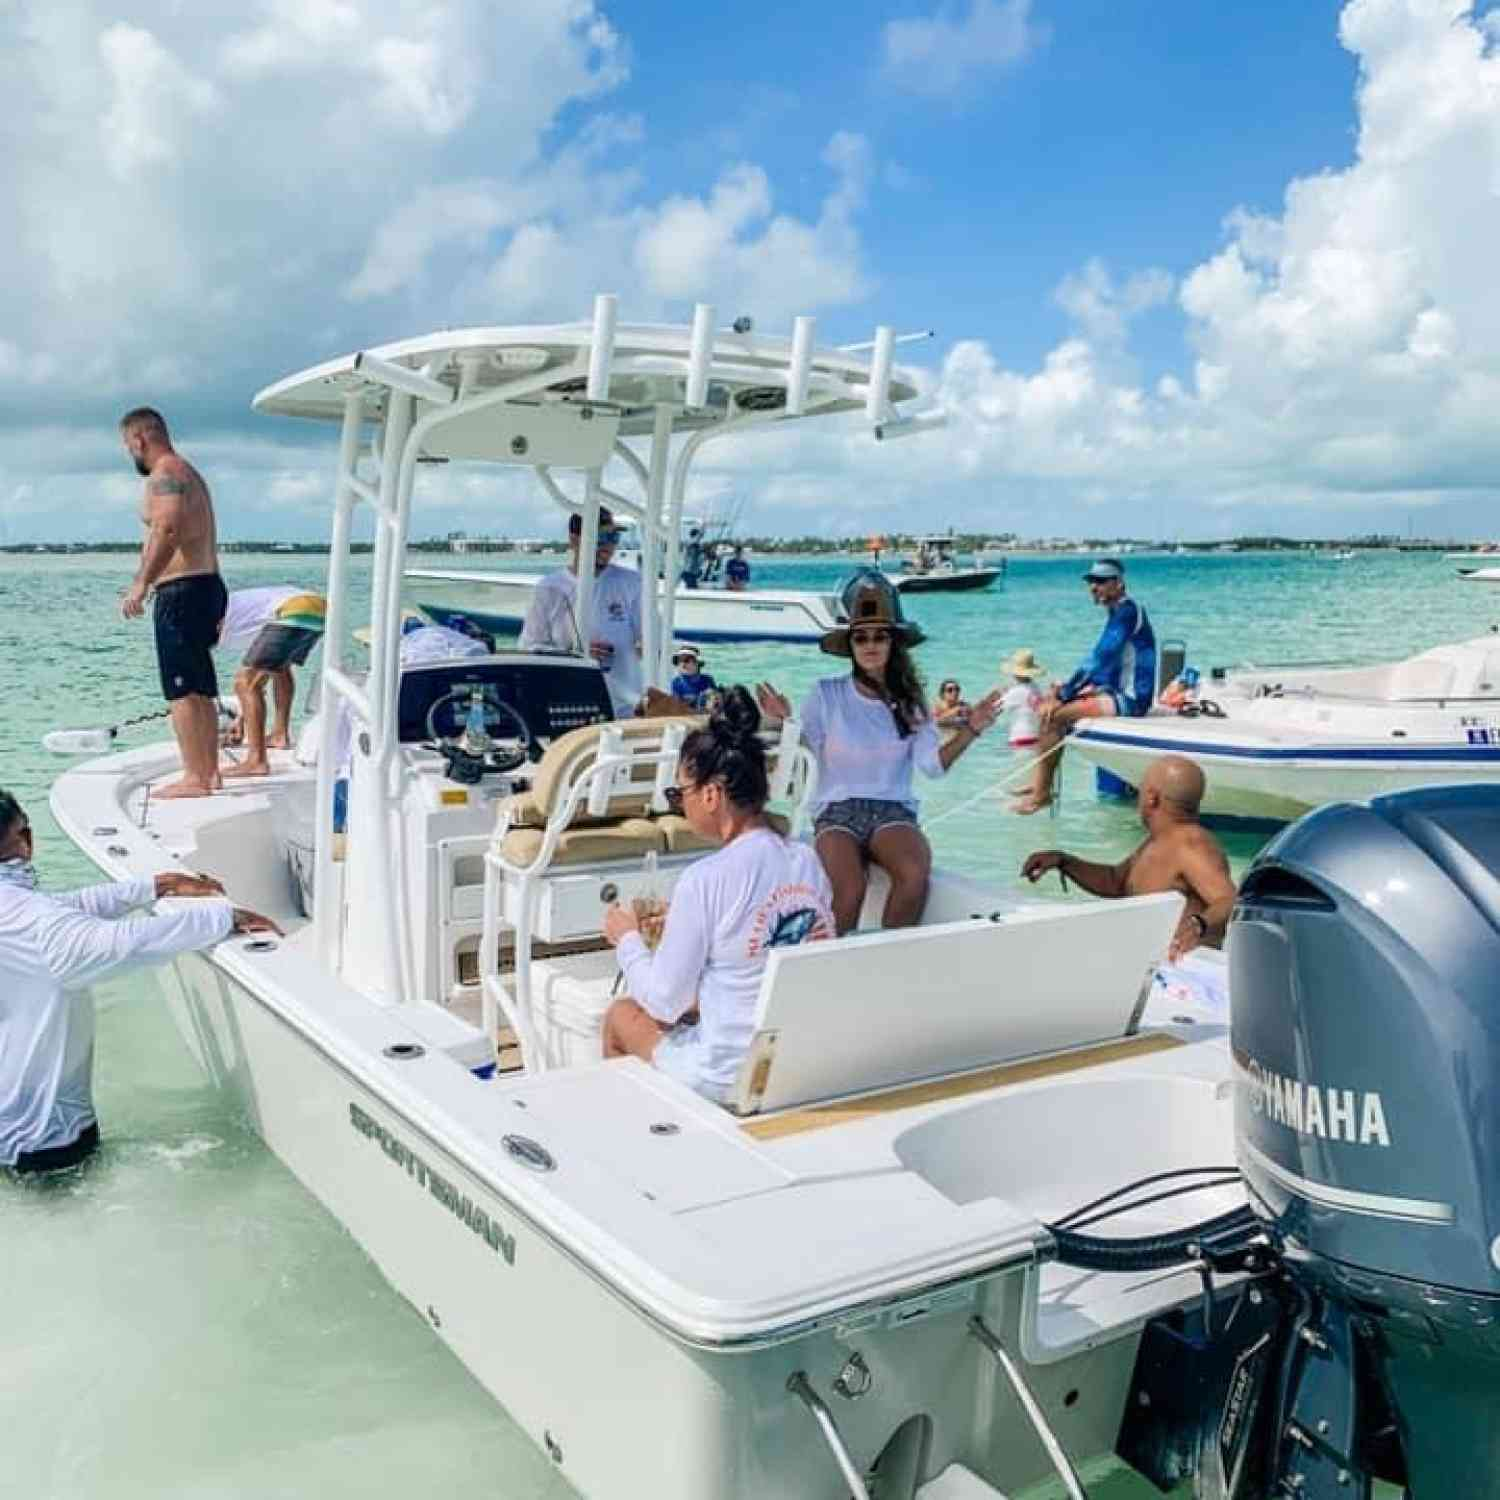 Title: 40th Birthday - On board their Sportsman Masters 247 Bay Boat - Location: Islamorada. Participating in the Photo Contest #SportsmanFebruary2021